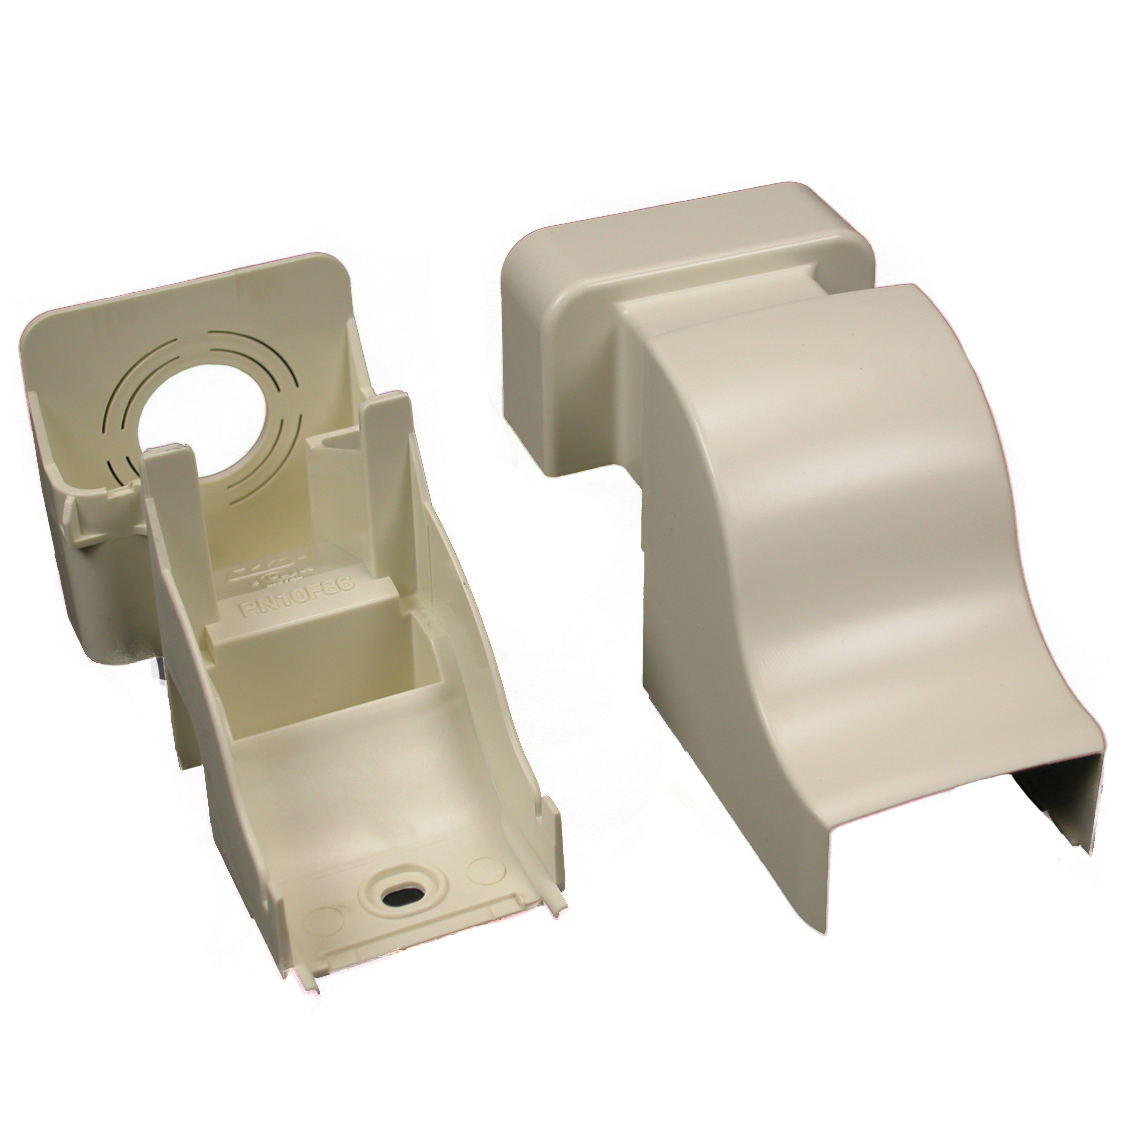 Legrand - Wiremold Eclipse™ PN03, PN05, PN10 Series Drop Ceiling Connector